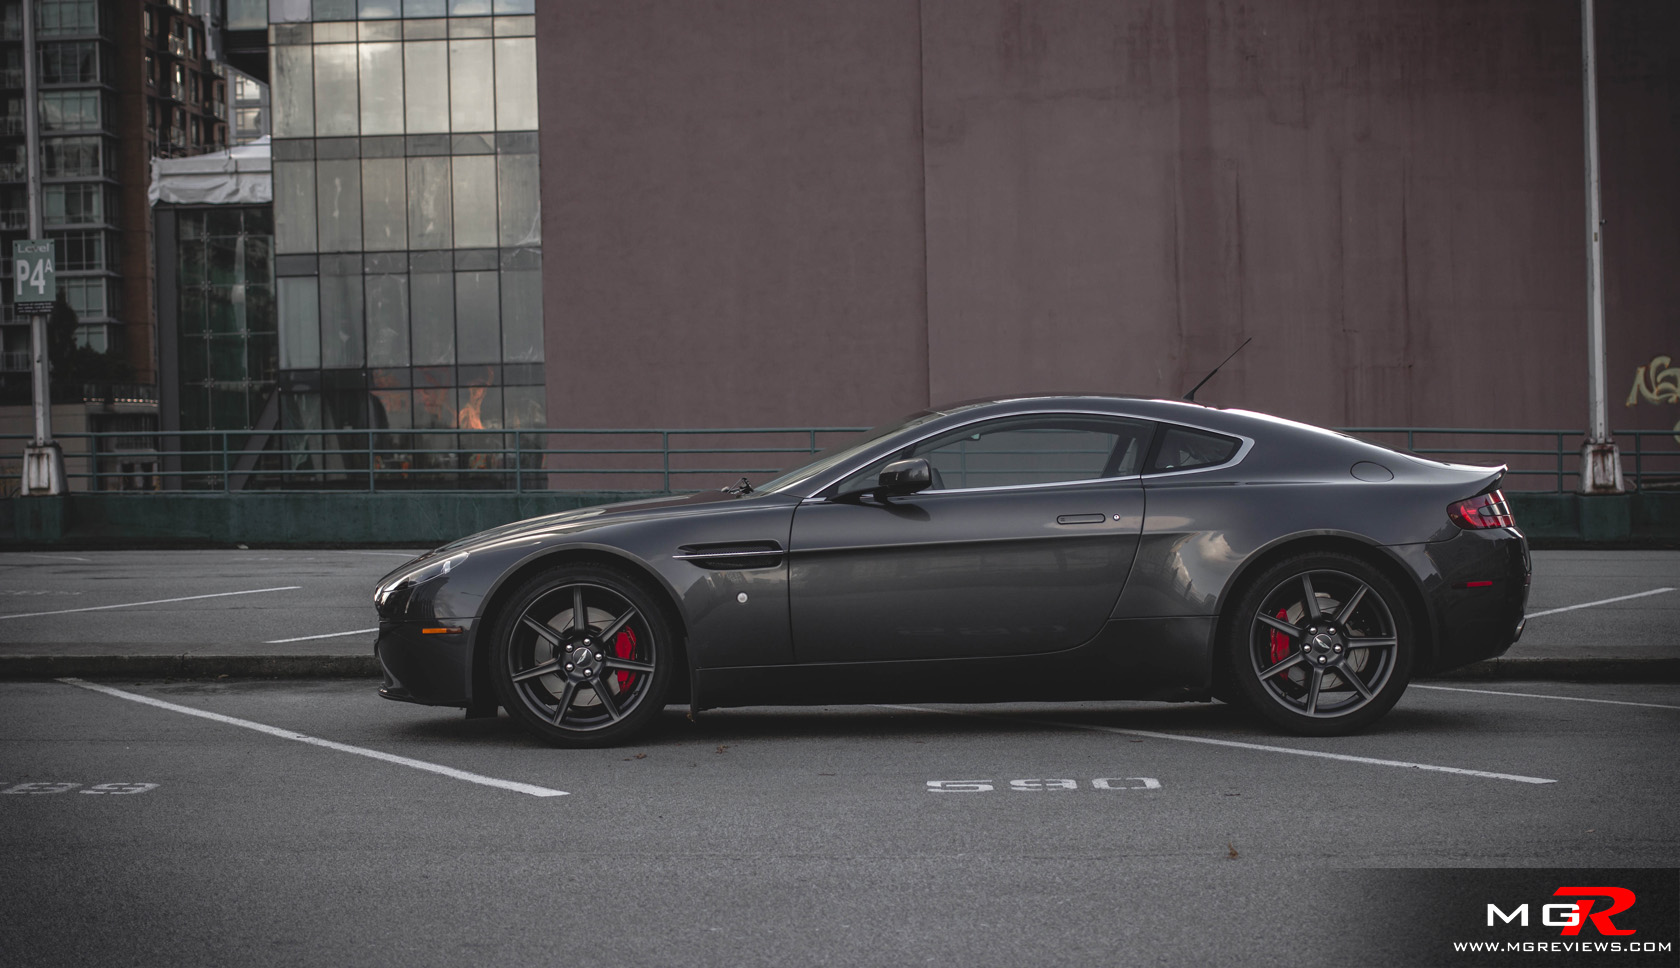 Review Aston Martin V Vantage MGReviews - 2007 aston martin v8 vantage